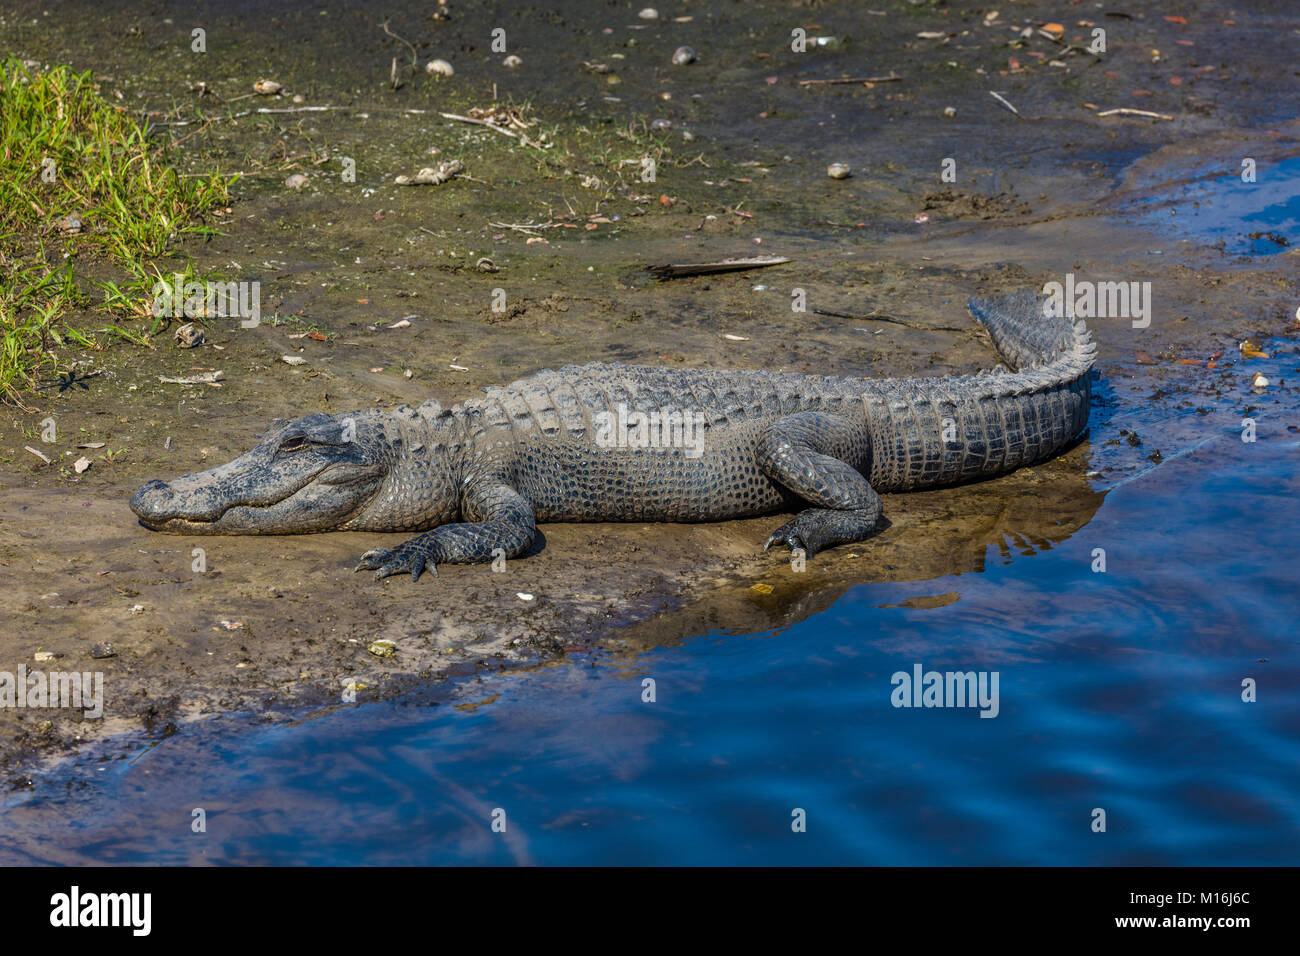 Alligator on bank of Myakka River in Myakka River State Pak in Sarsaota Florida in the United States - Stock Image